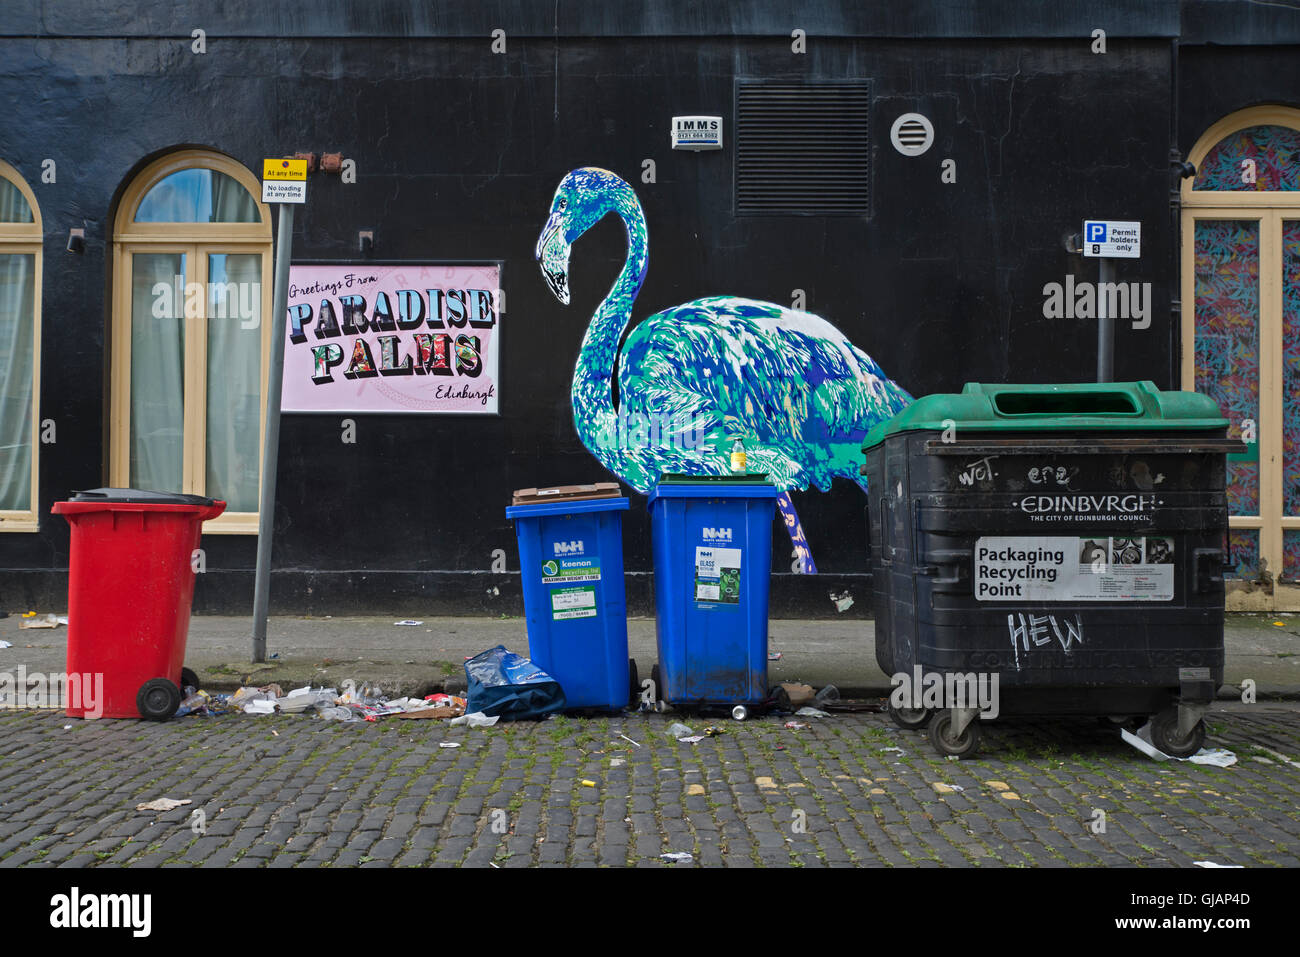 Waste bins and rubbish on the street to the side of the ironically names Paradise Palms venue in Edinburgh. - Stock Image